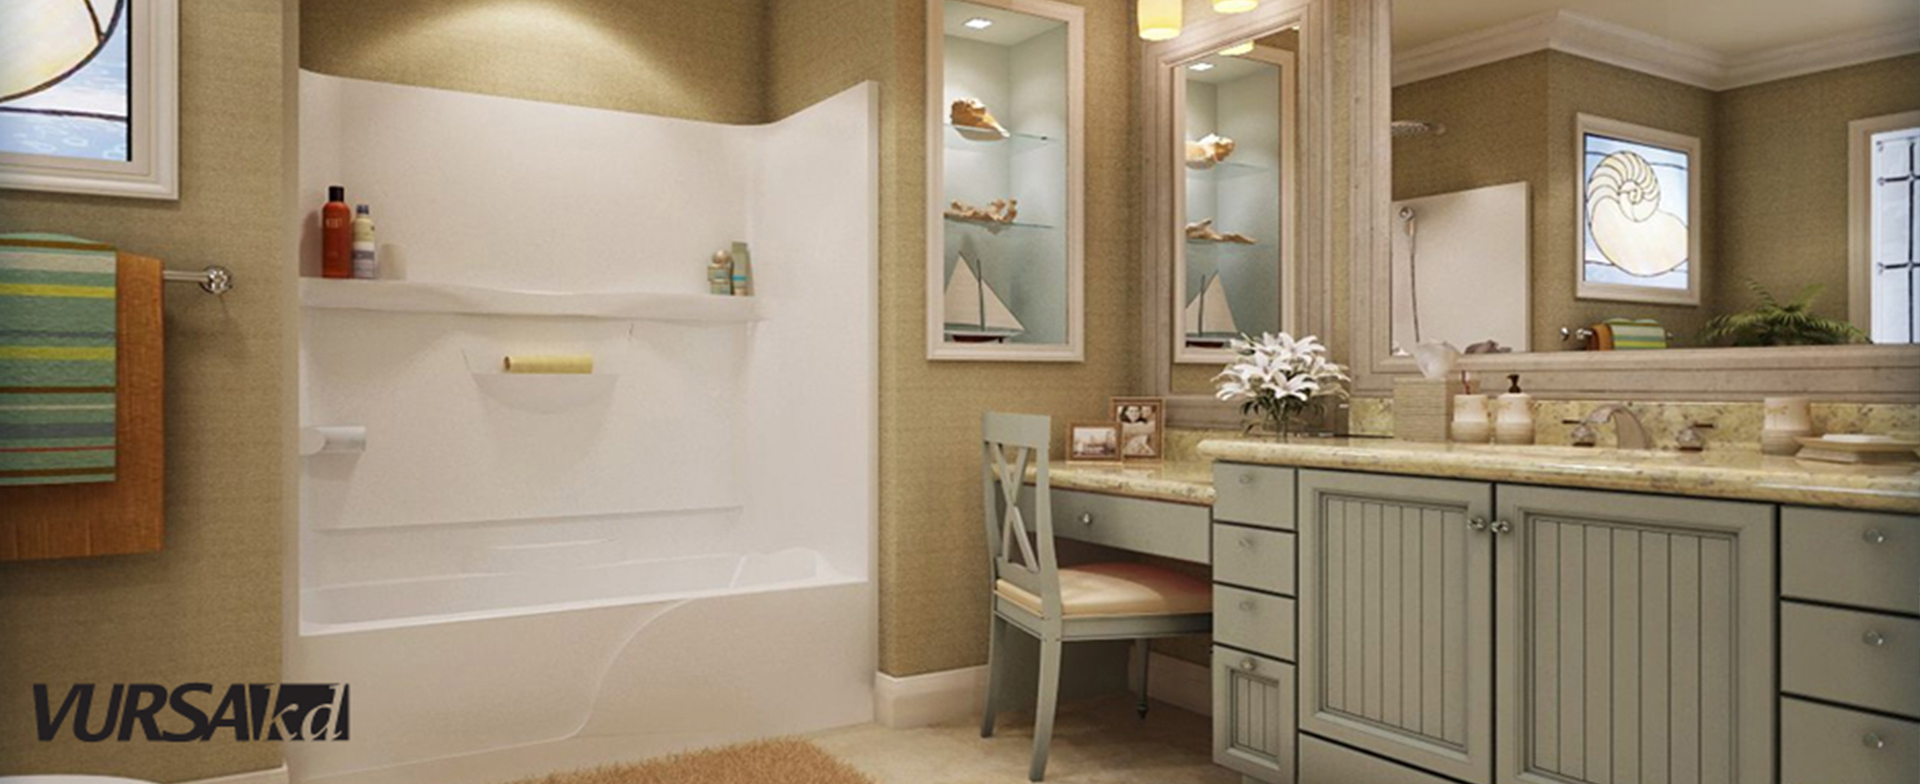 American Bath And Shower Company oasis